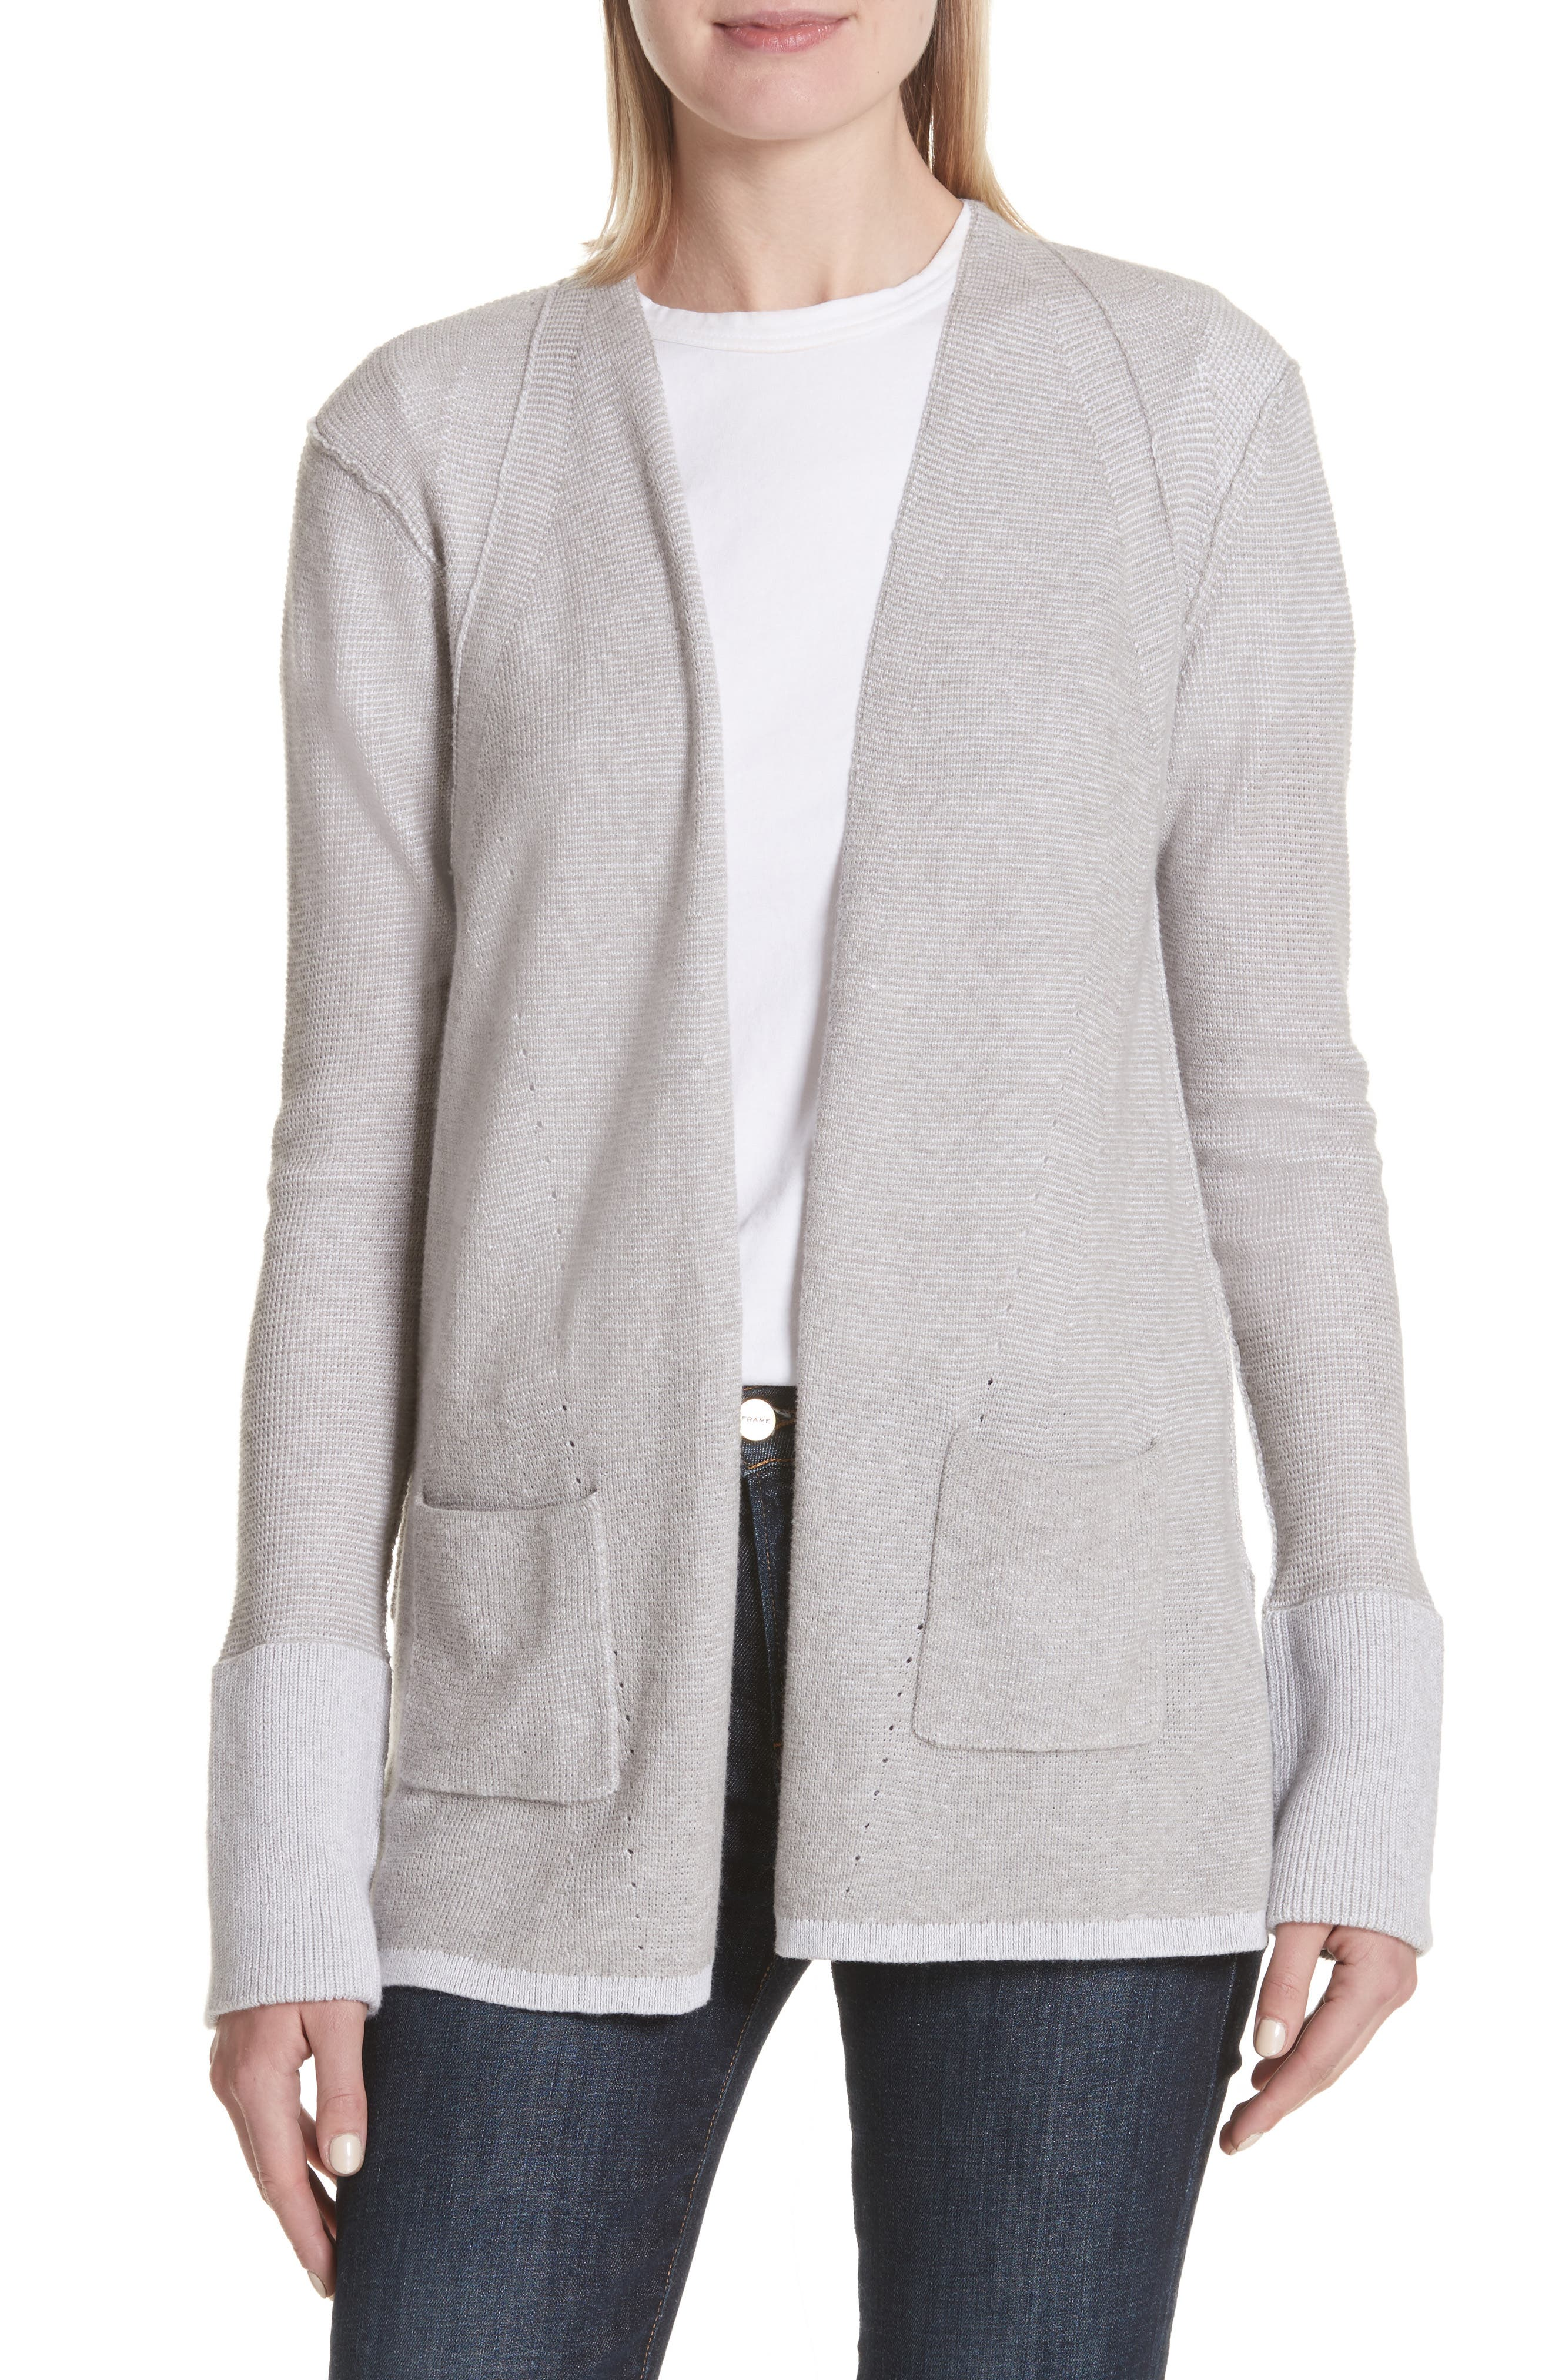 ATM Anthony Thomas Melillo Cotton & Cashmere Waffle Knit Cardigan (Nordstrom Exclusive)